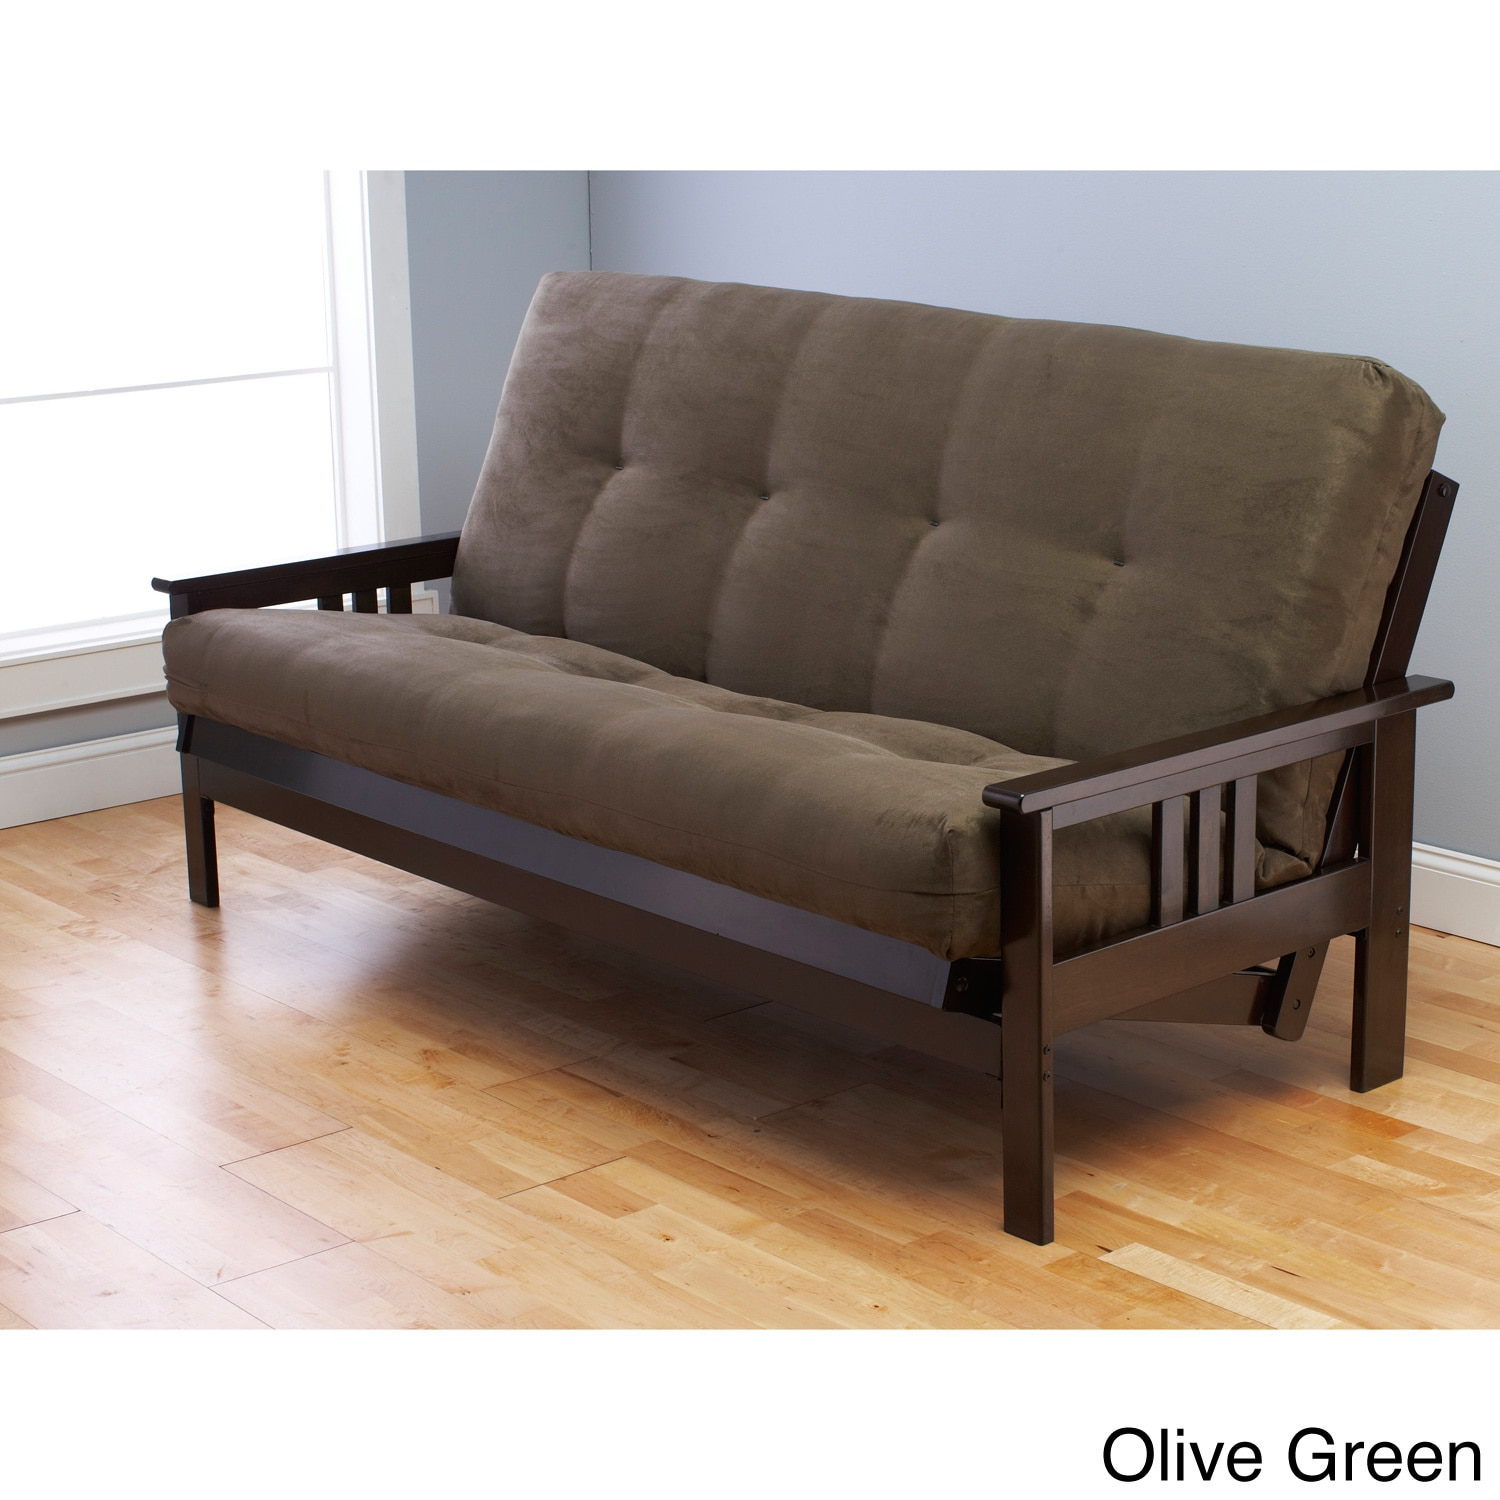 futon sofa bed queen size cushion cover online india somette monterey hardwood suede